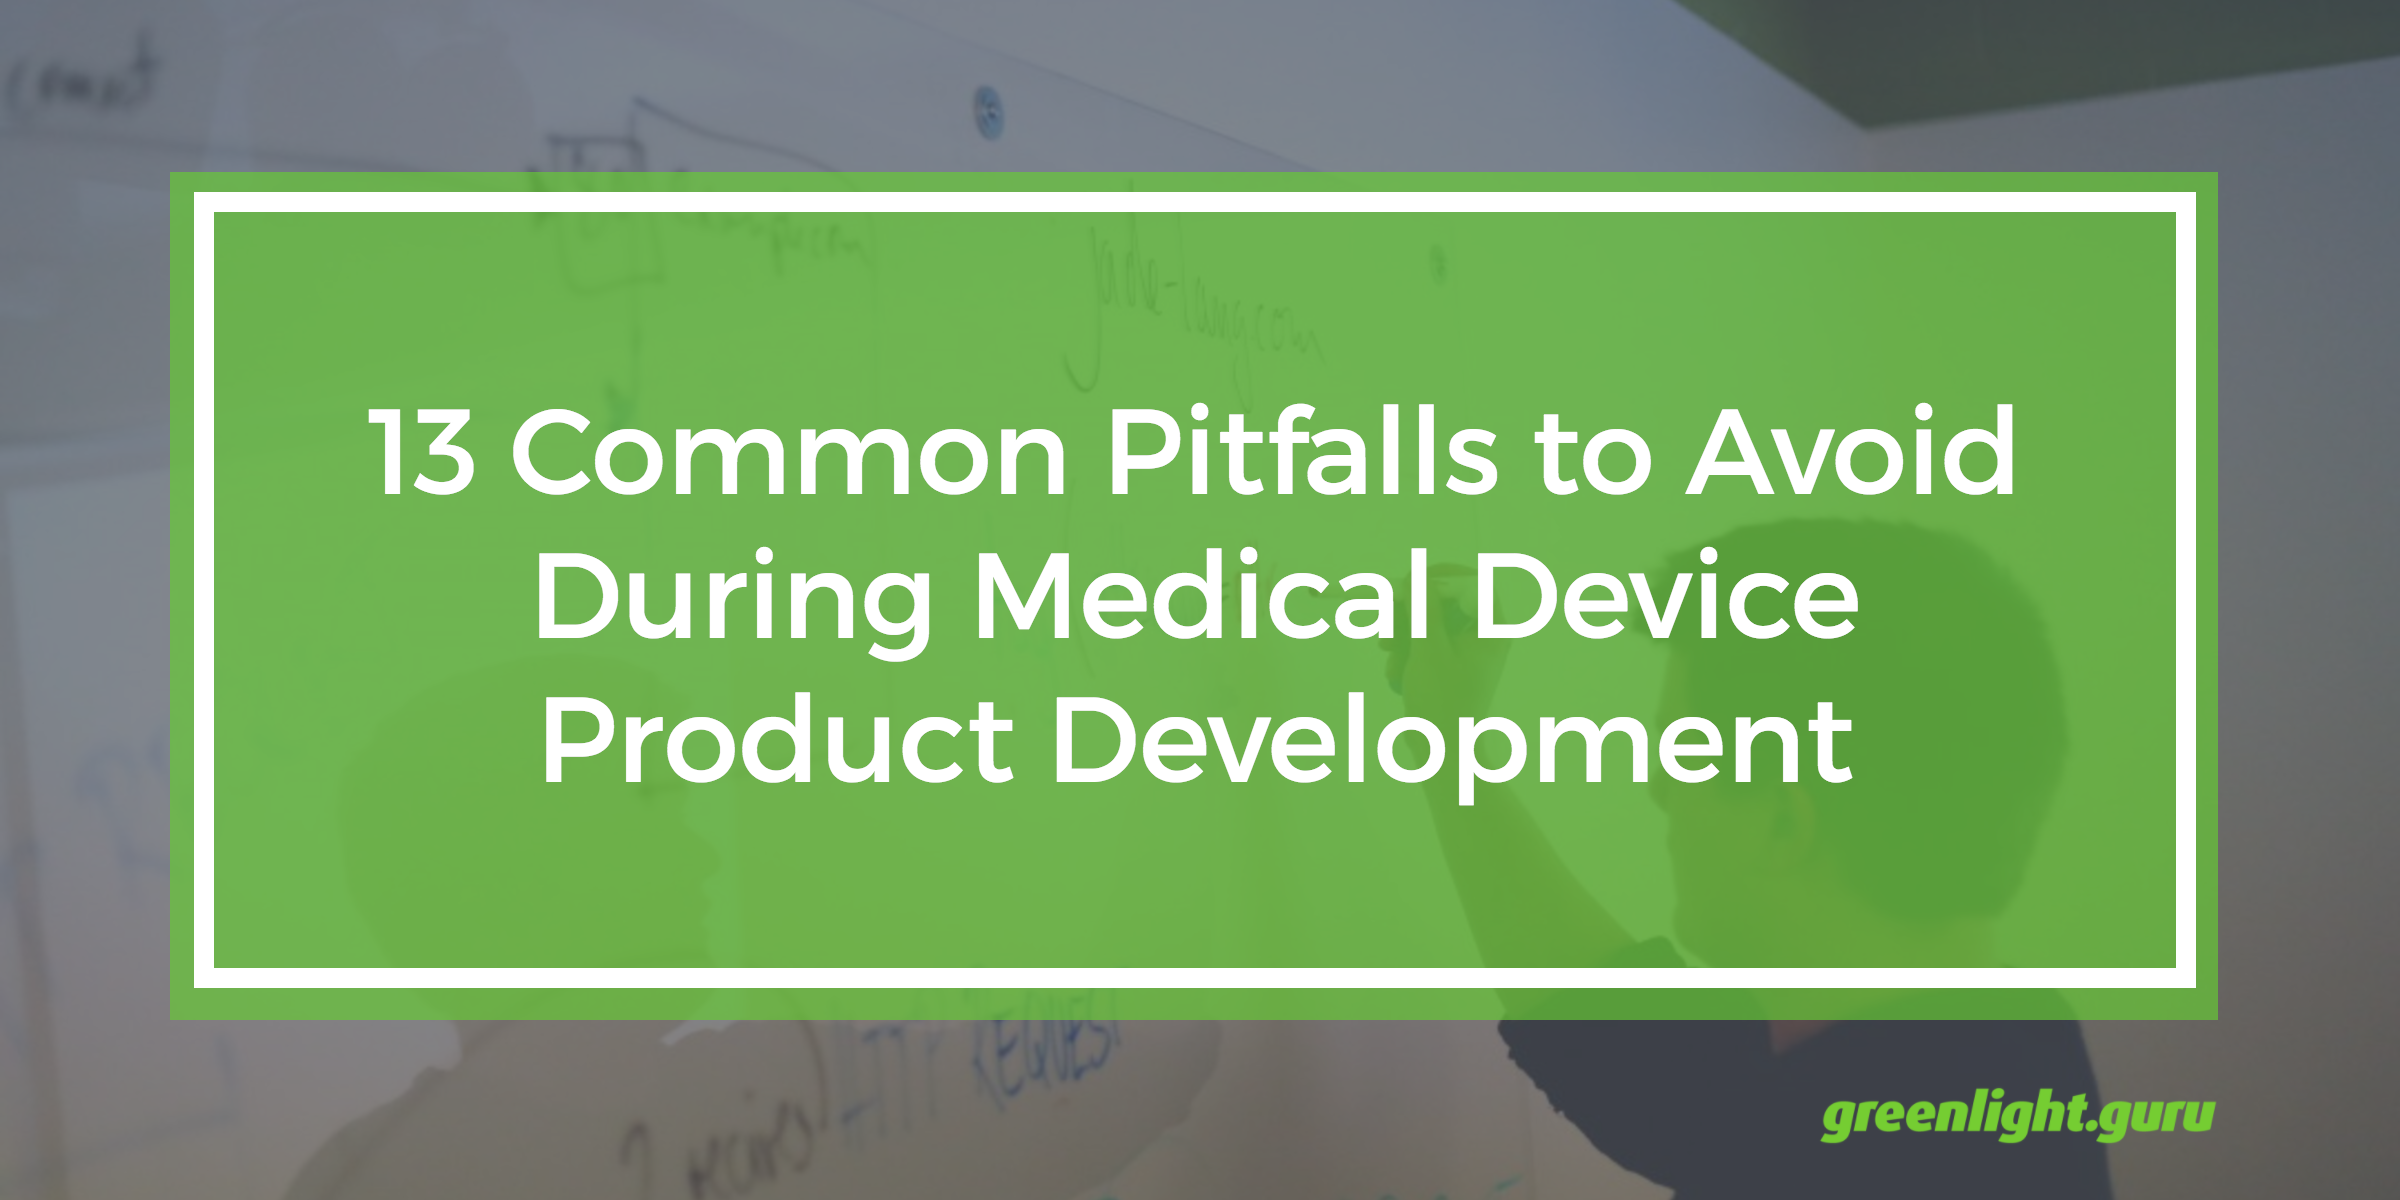 13 Common Pitfalls to Avoid During Medical Device Product Development - Featured Image